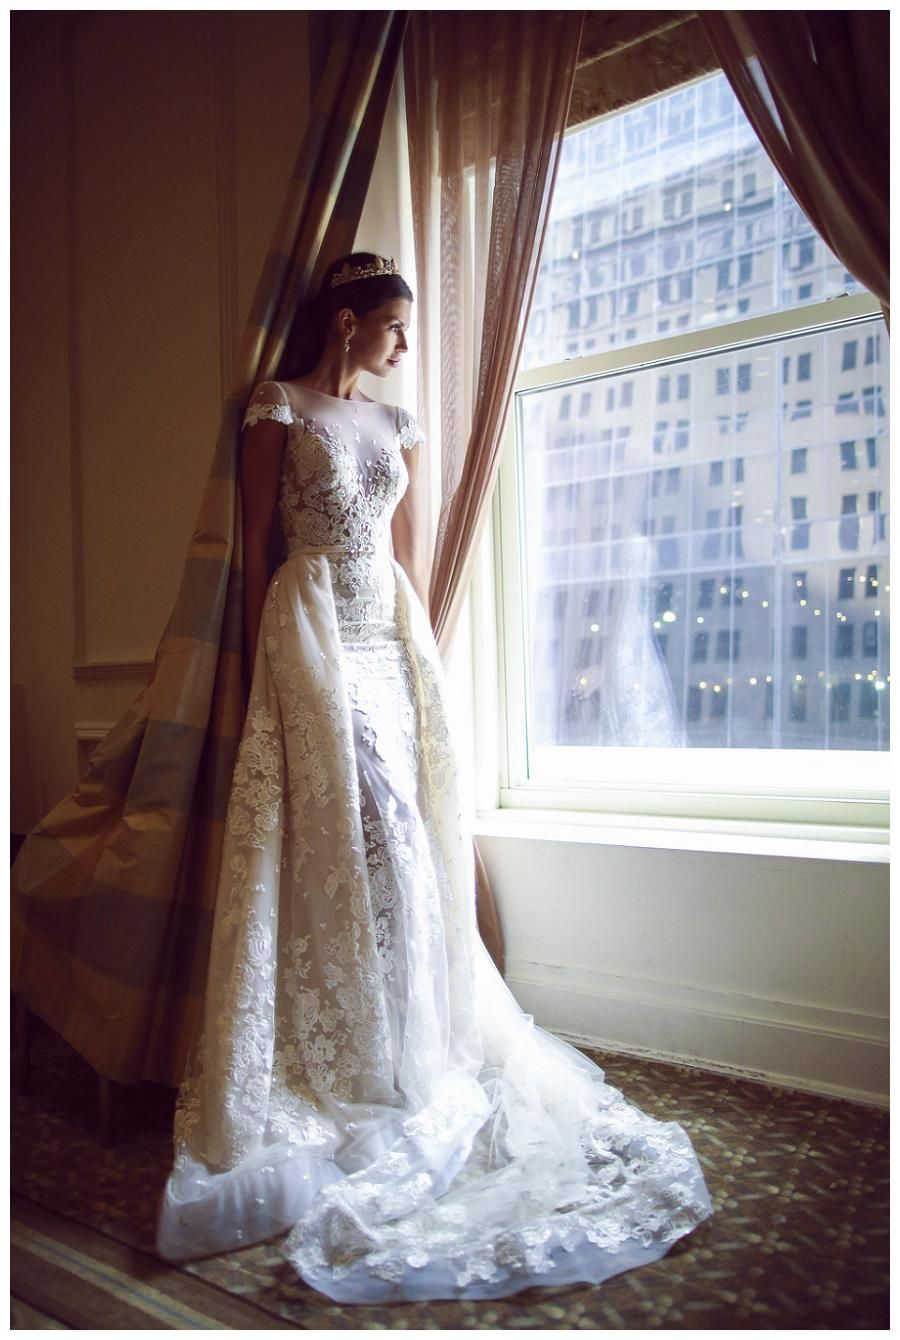 Southern belle wedding dresses  Wedding dress from the Berta  Bridal Collection  Bridal Market